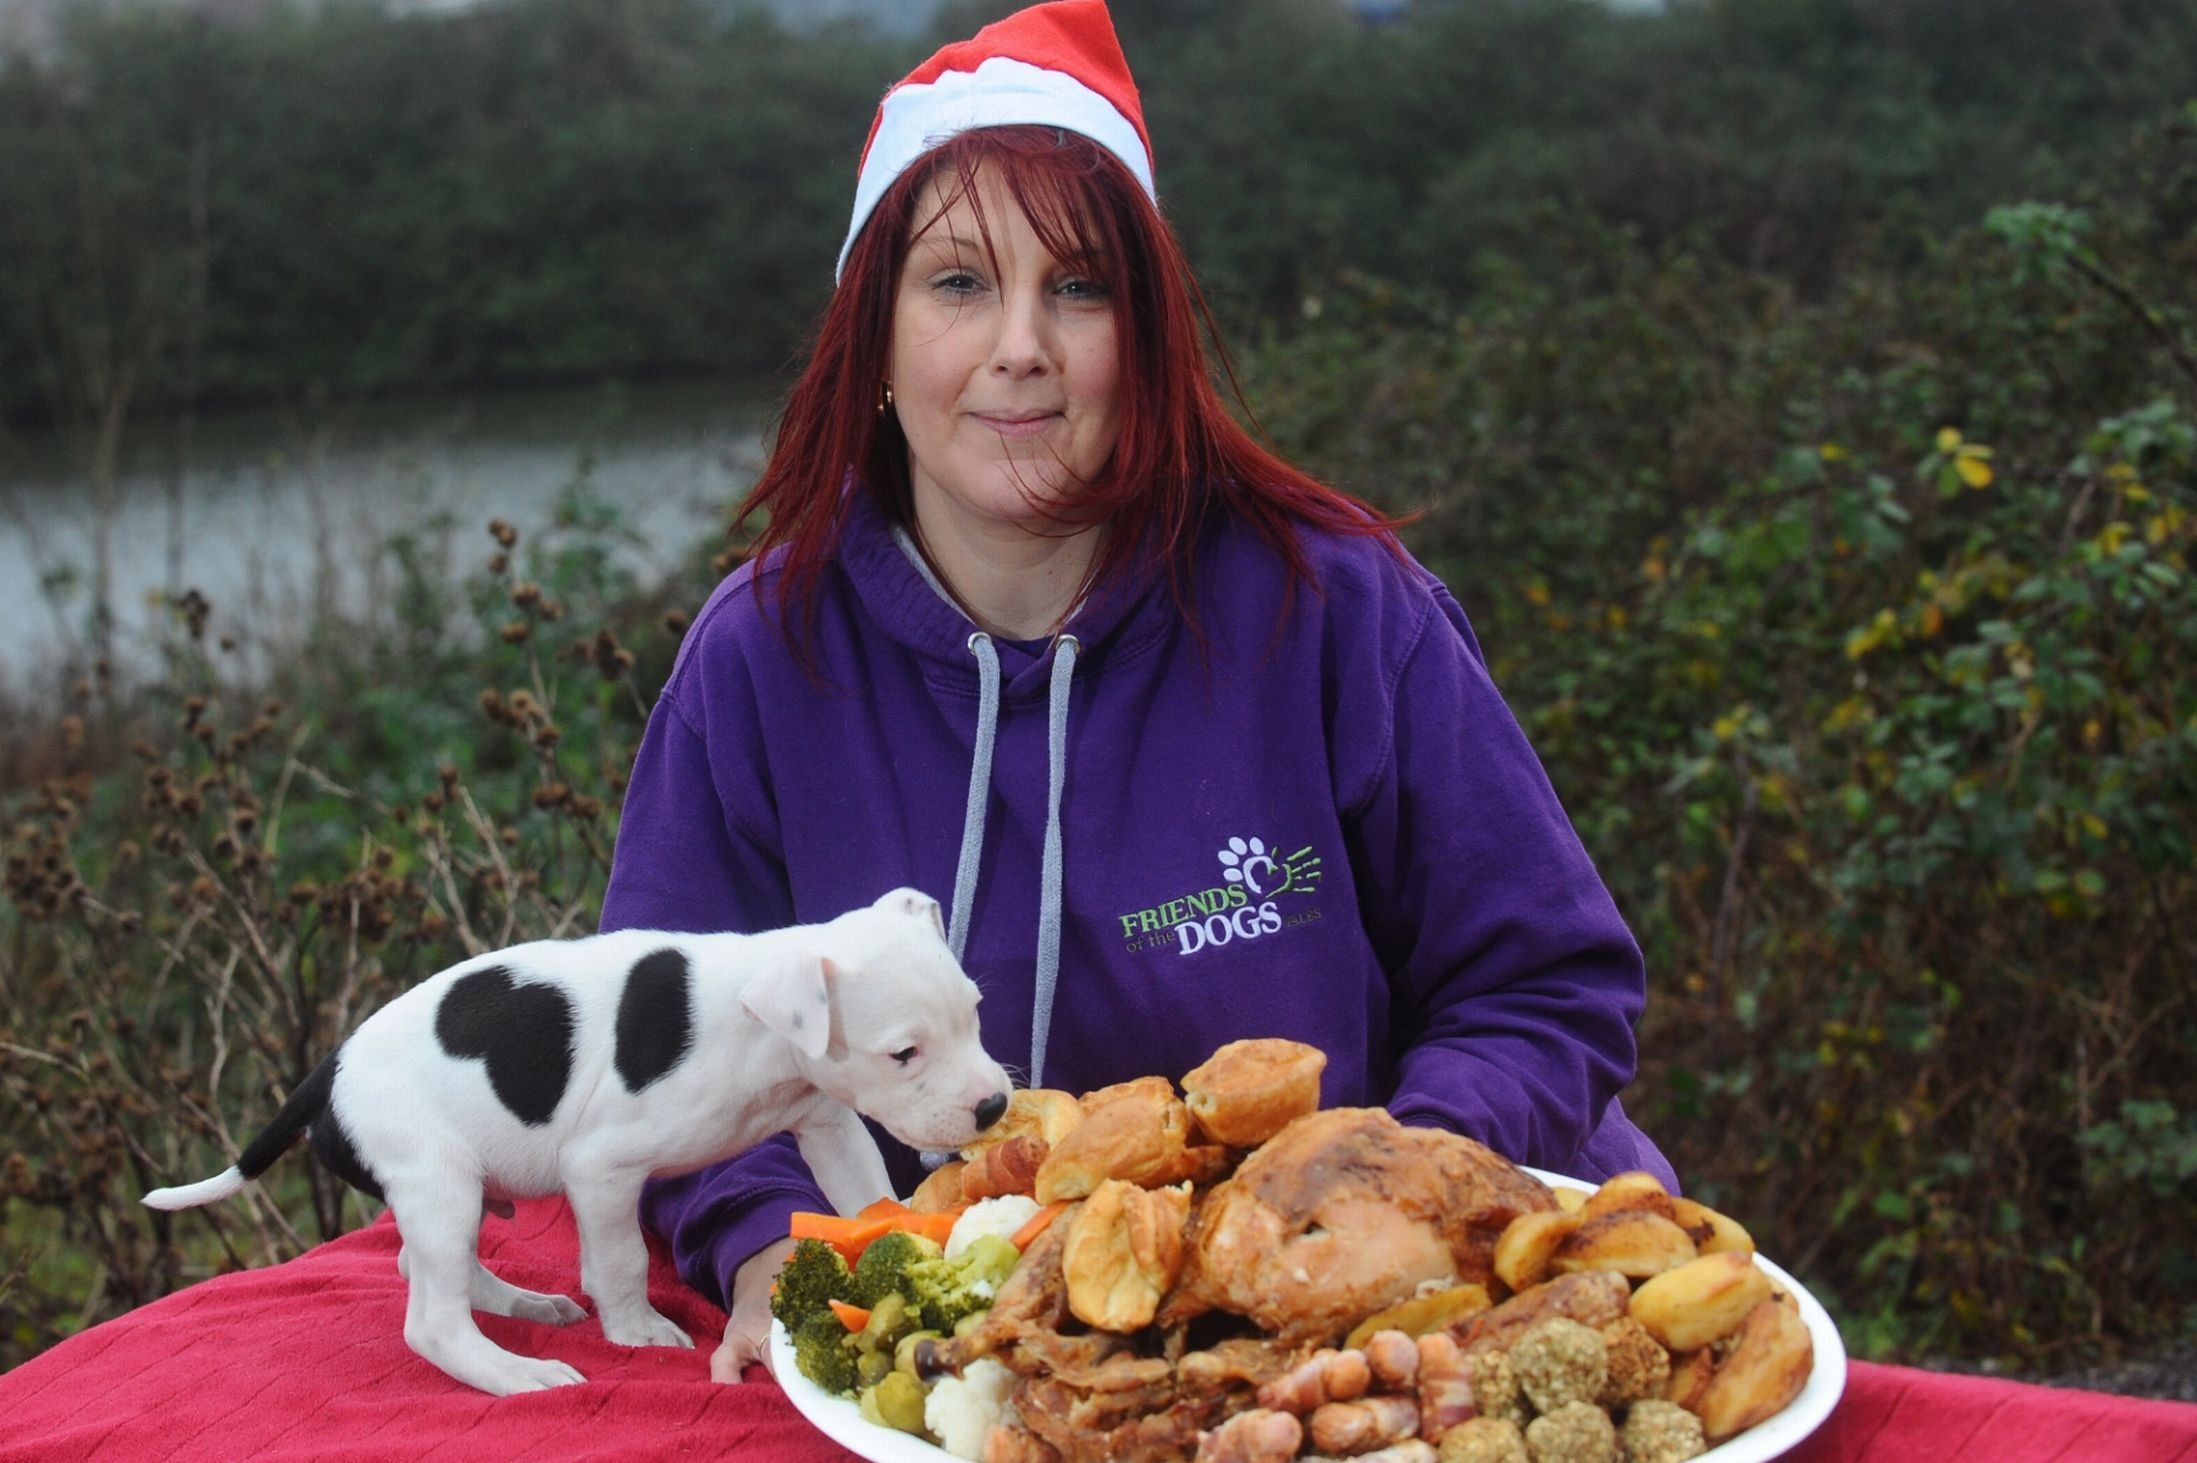 Cardiff S Stray Dogs Get Christmas Dinner With The Trimmings Christmas Dog Stray Dog Dogs